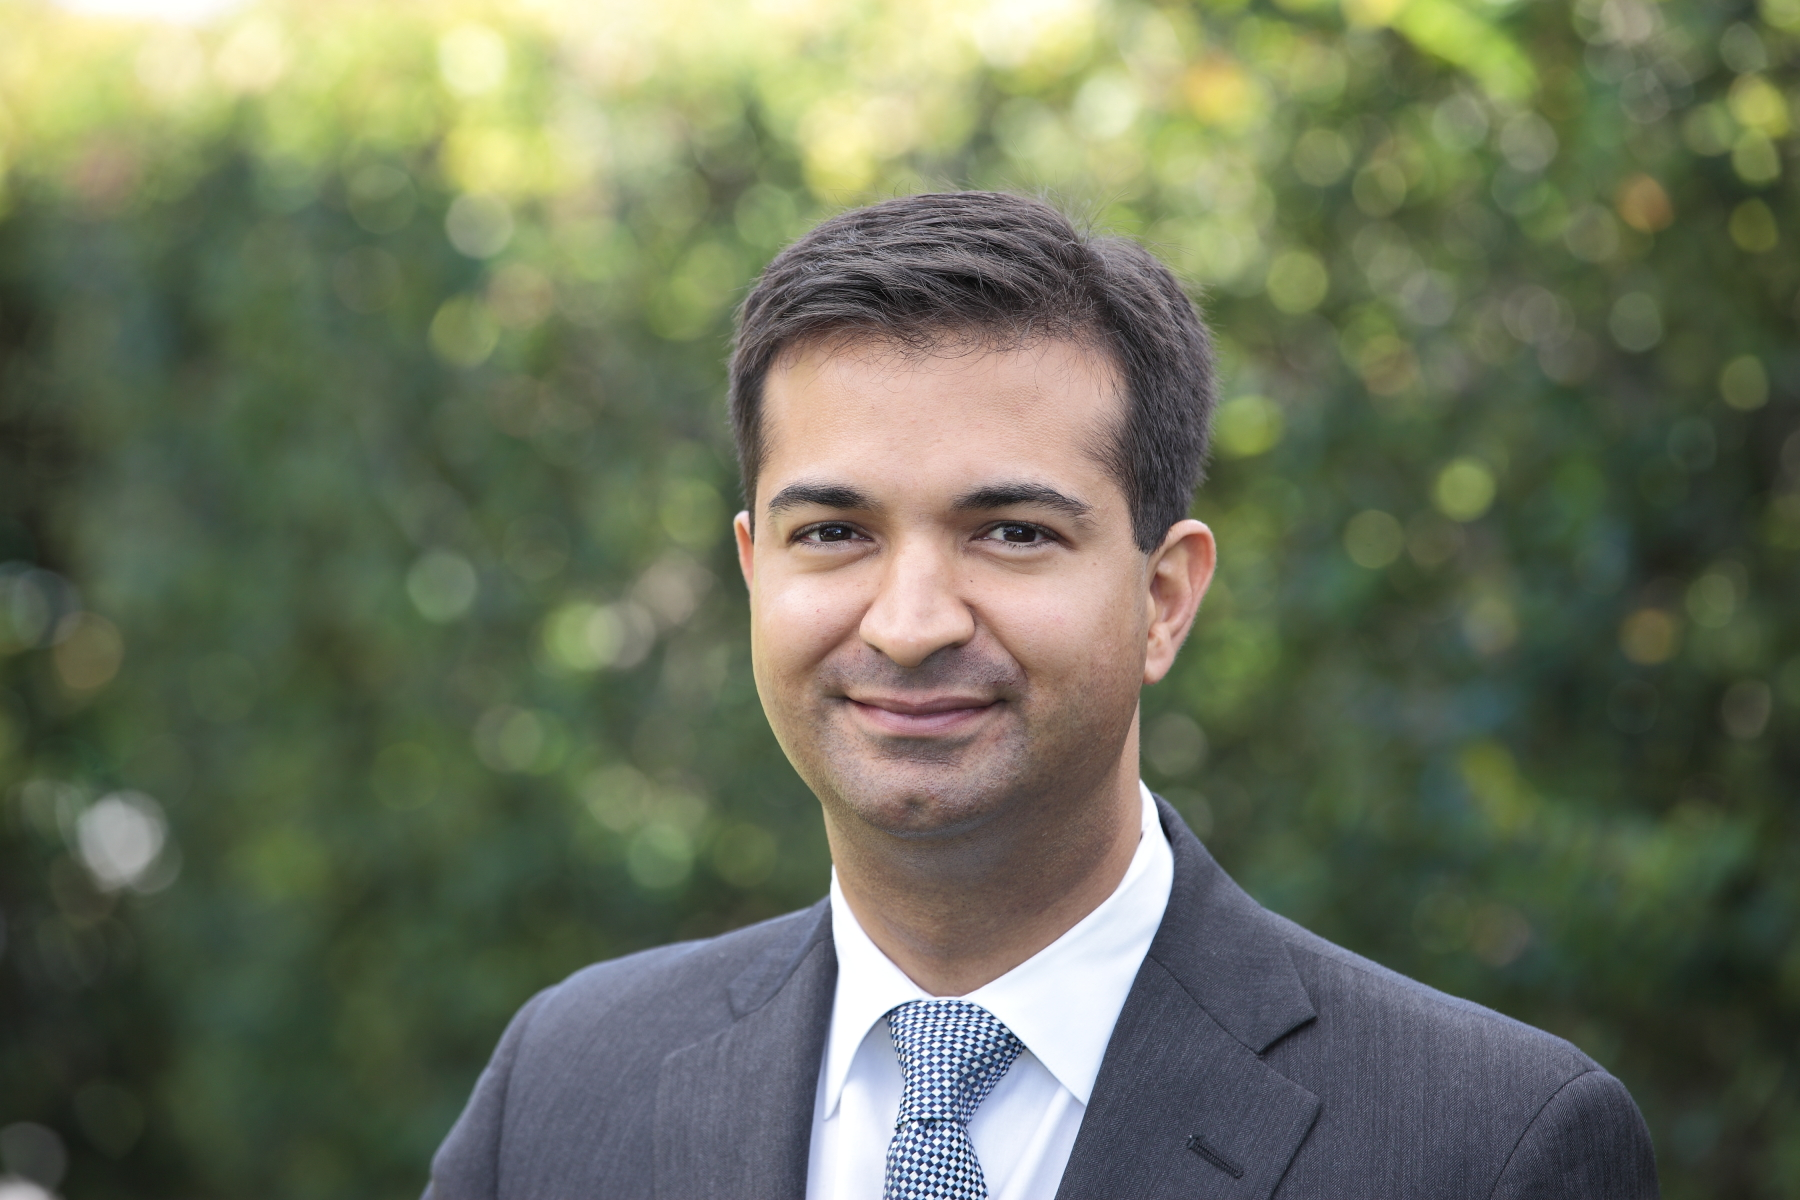 Rep. Carlos Curbelo co-founder of the Climate Solutions Caucus